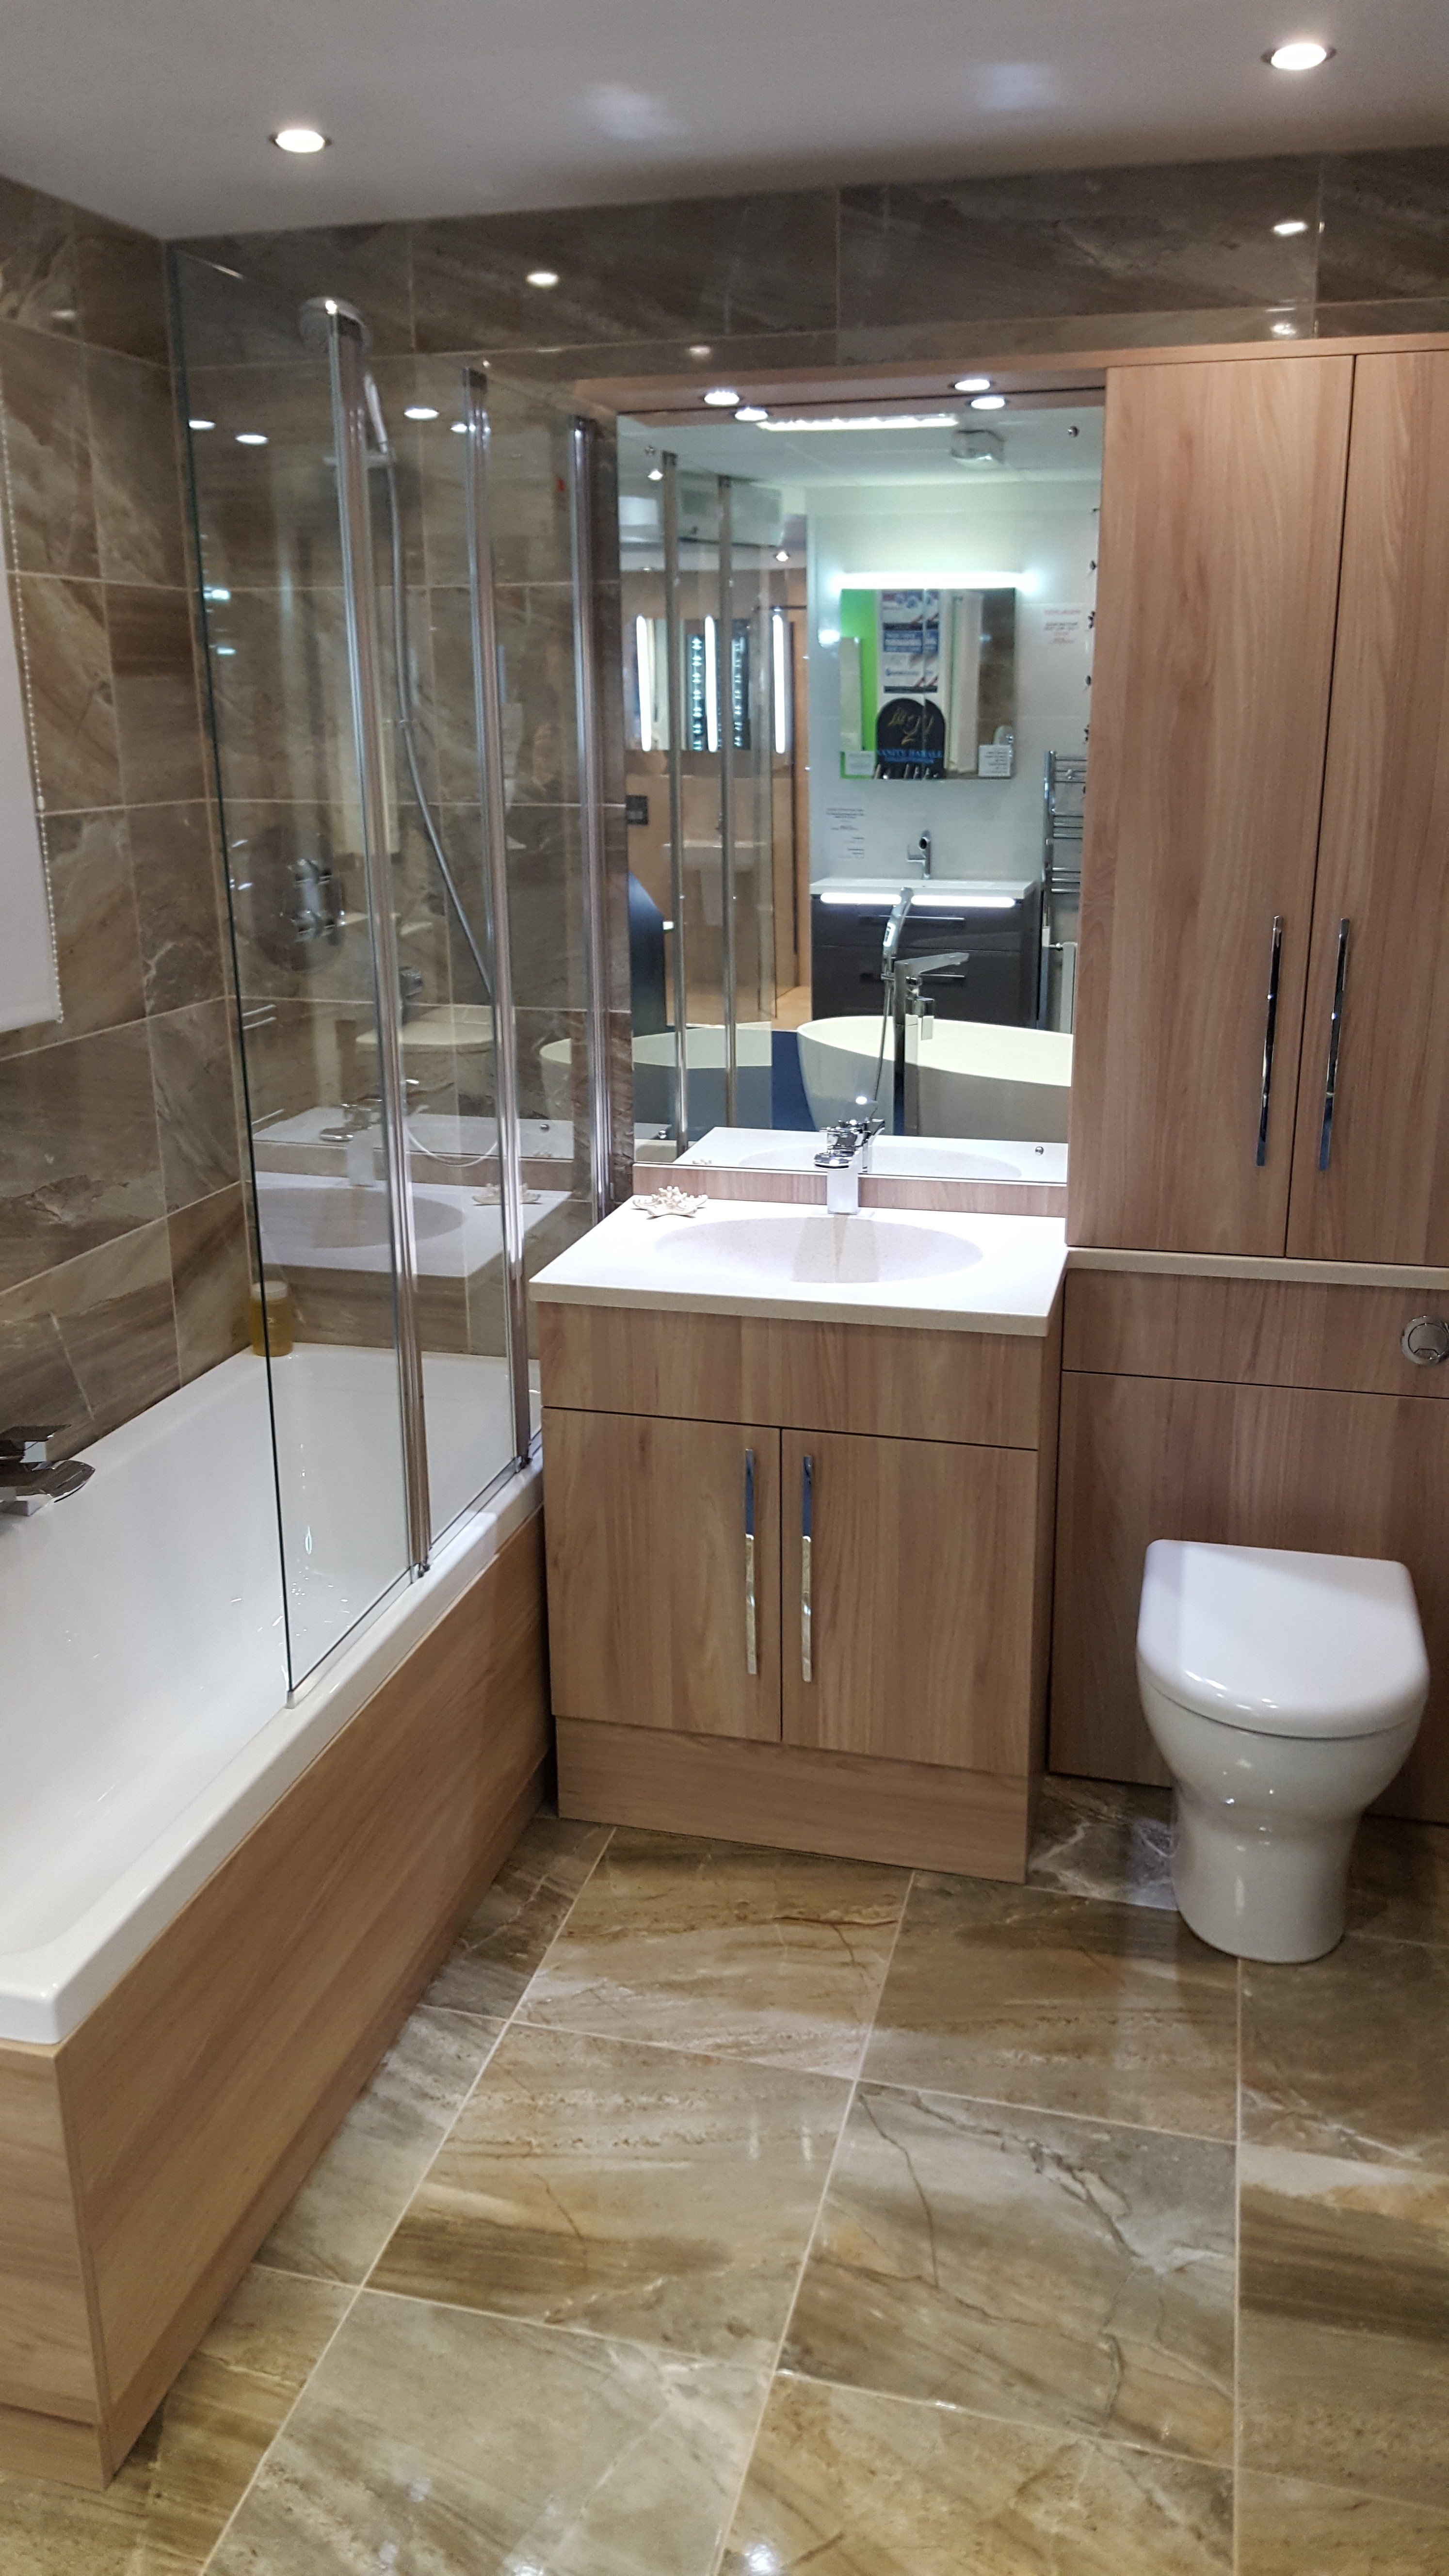 Our Bathroom And Bathroom Accessory Showroom In